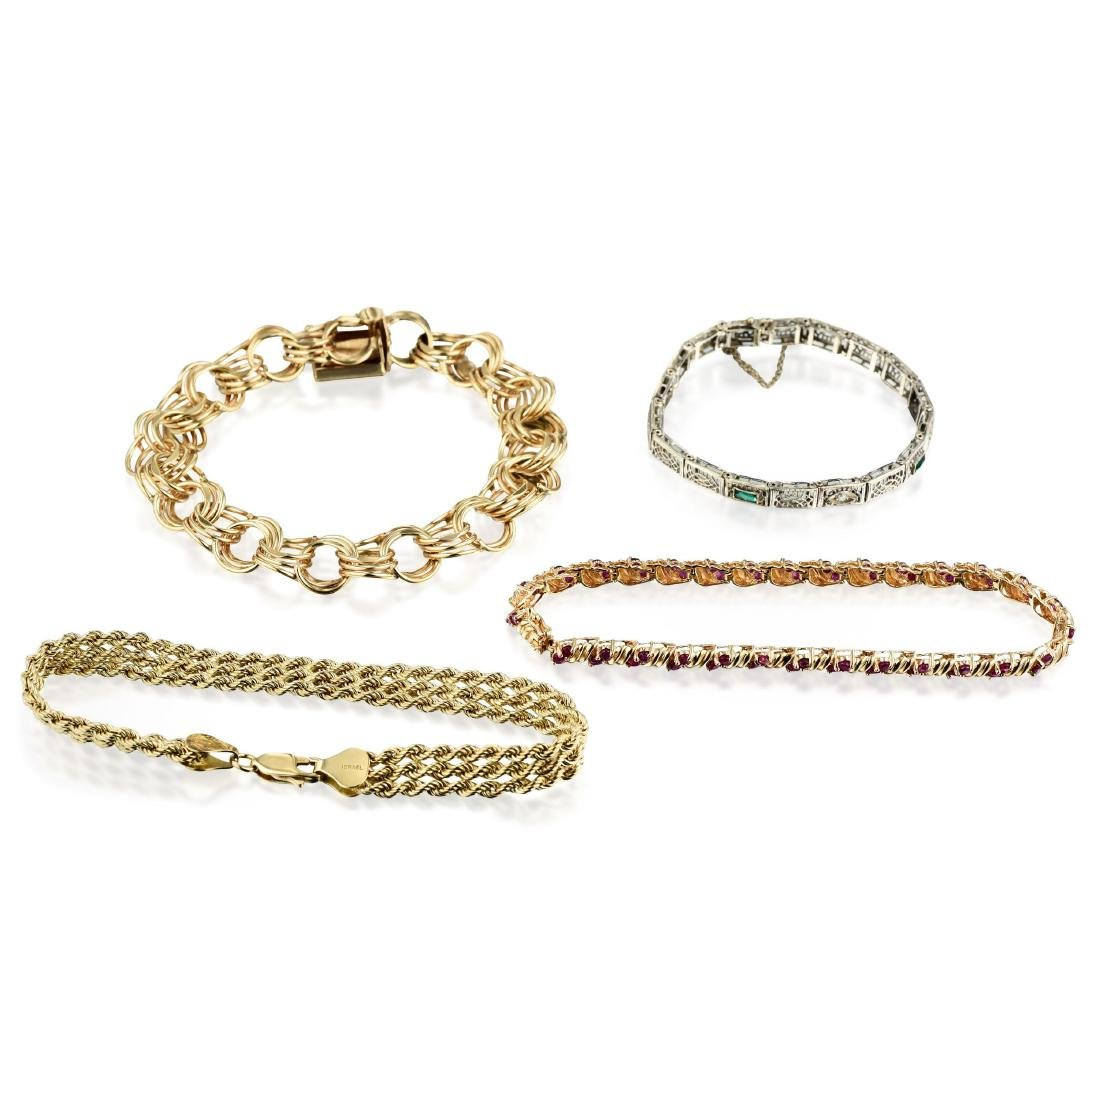 A Group of 14K Gold Bracelets